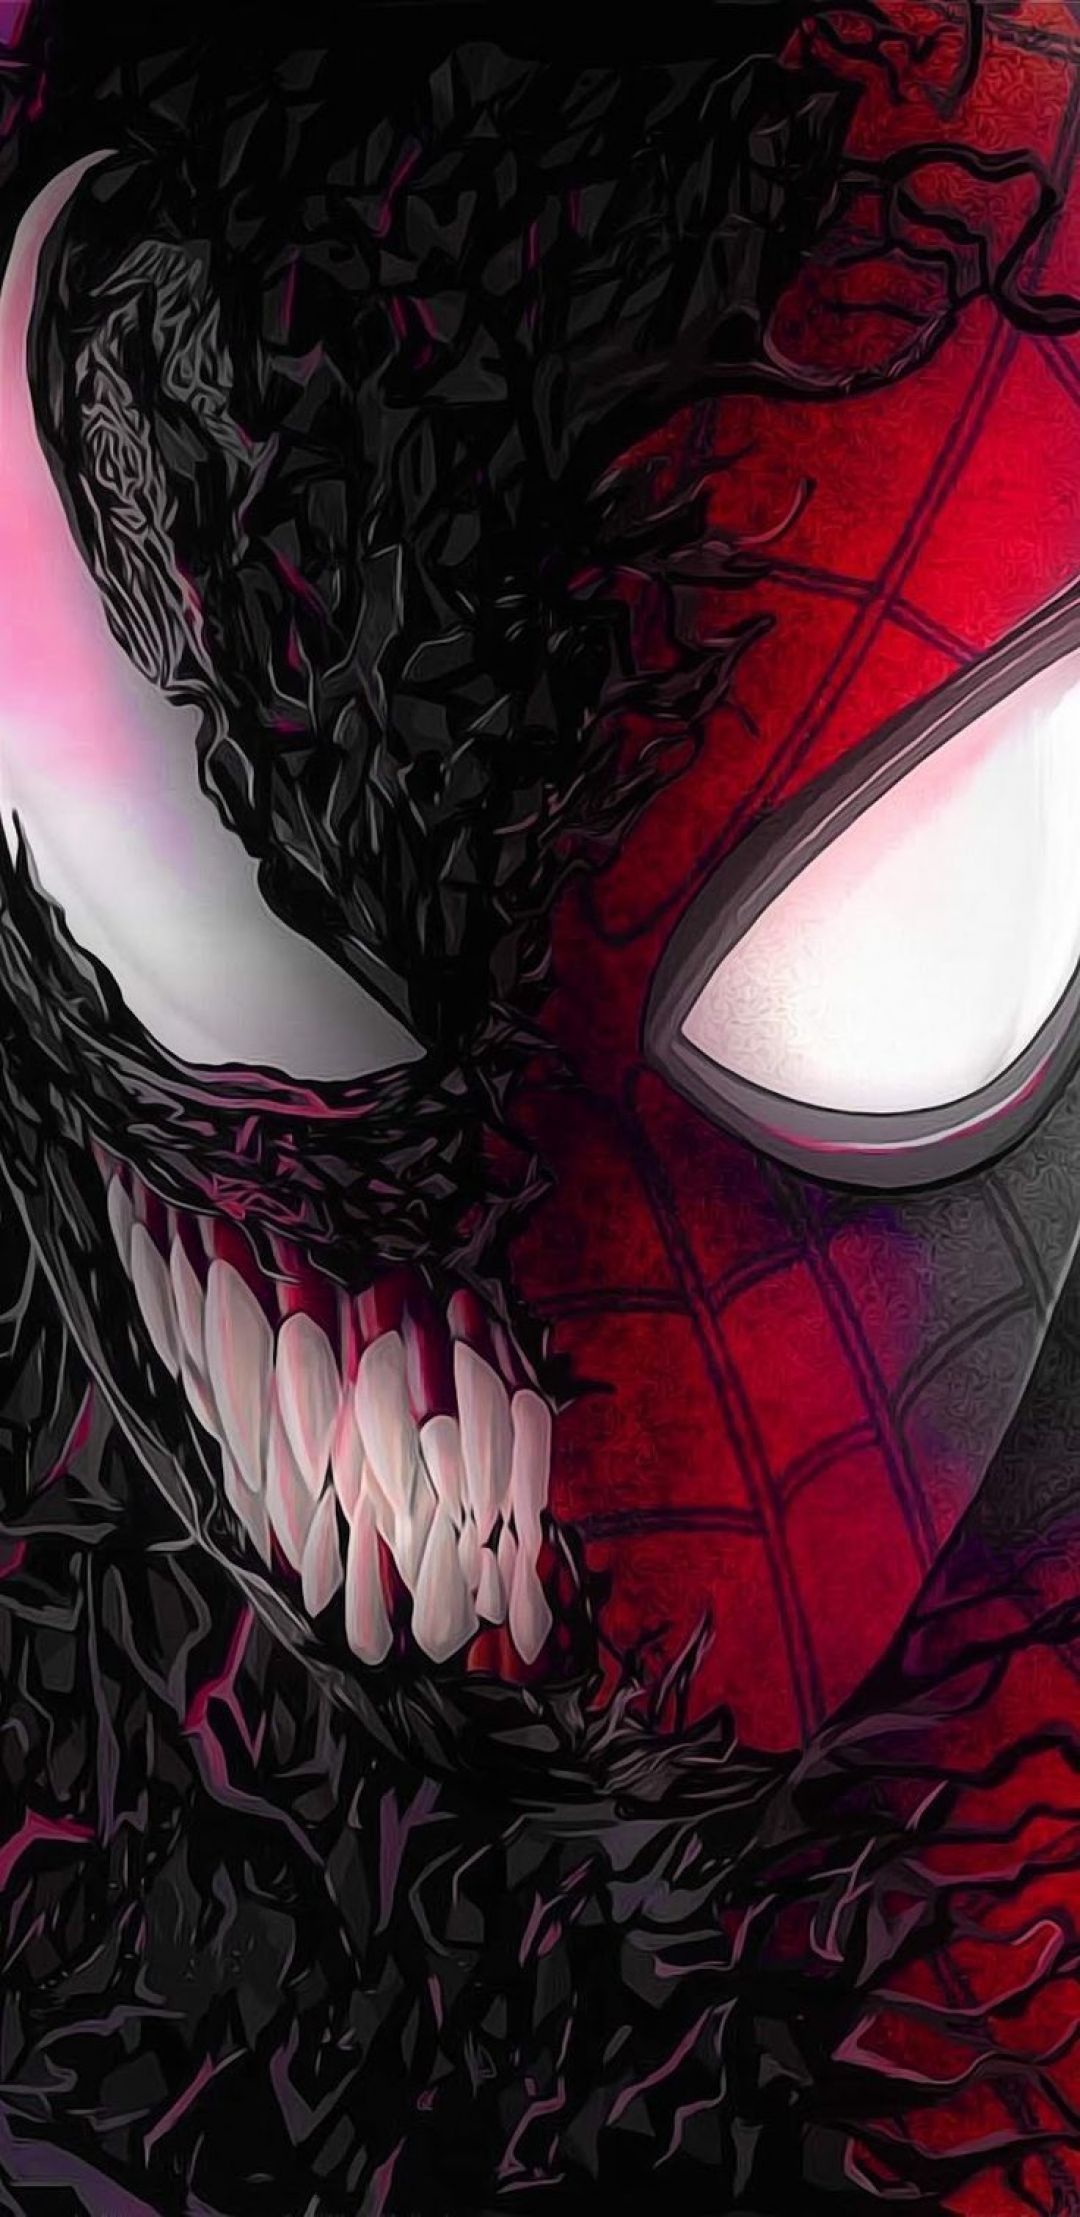 Abstract Spider Man Android Iphone Desktop Hd Backgrounds Wallpapers 1080p 4k 100234 Marvel Comics Wallpaper Marvel Wallpaper Marvel Wallpaper Hd